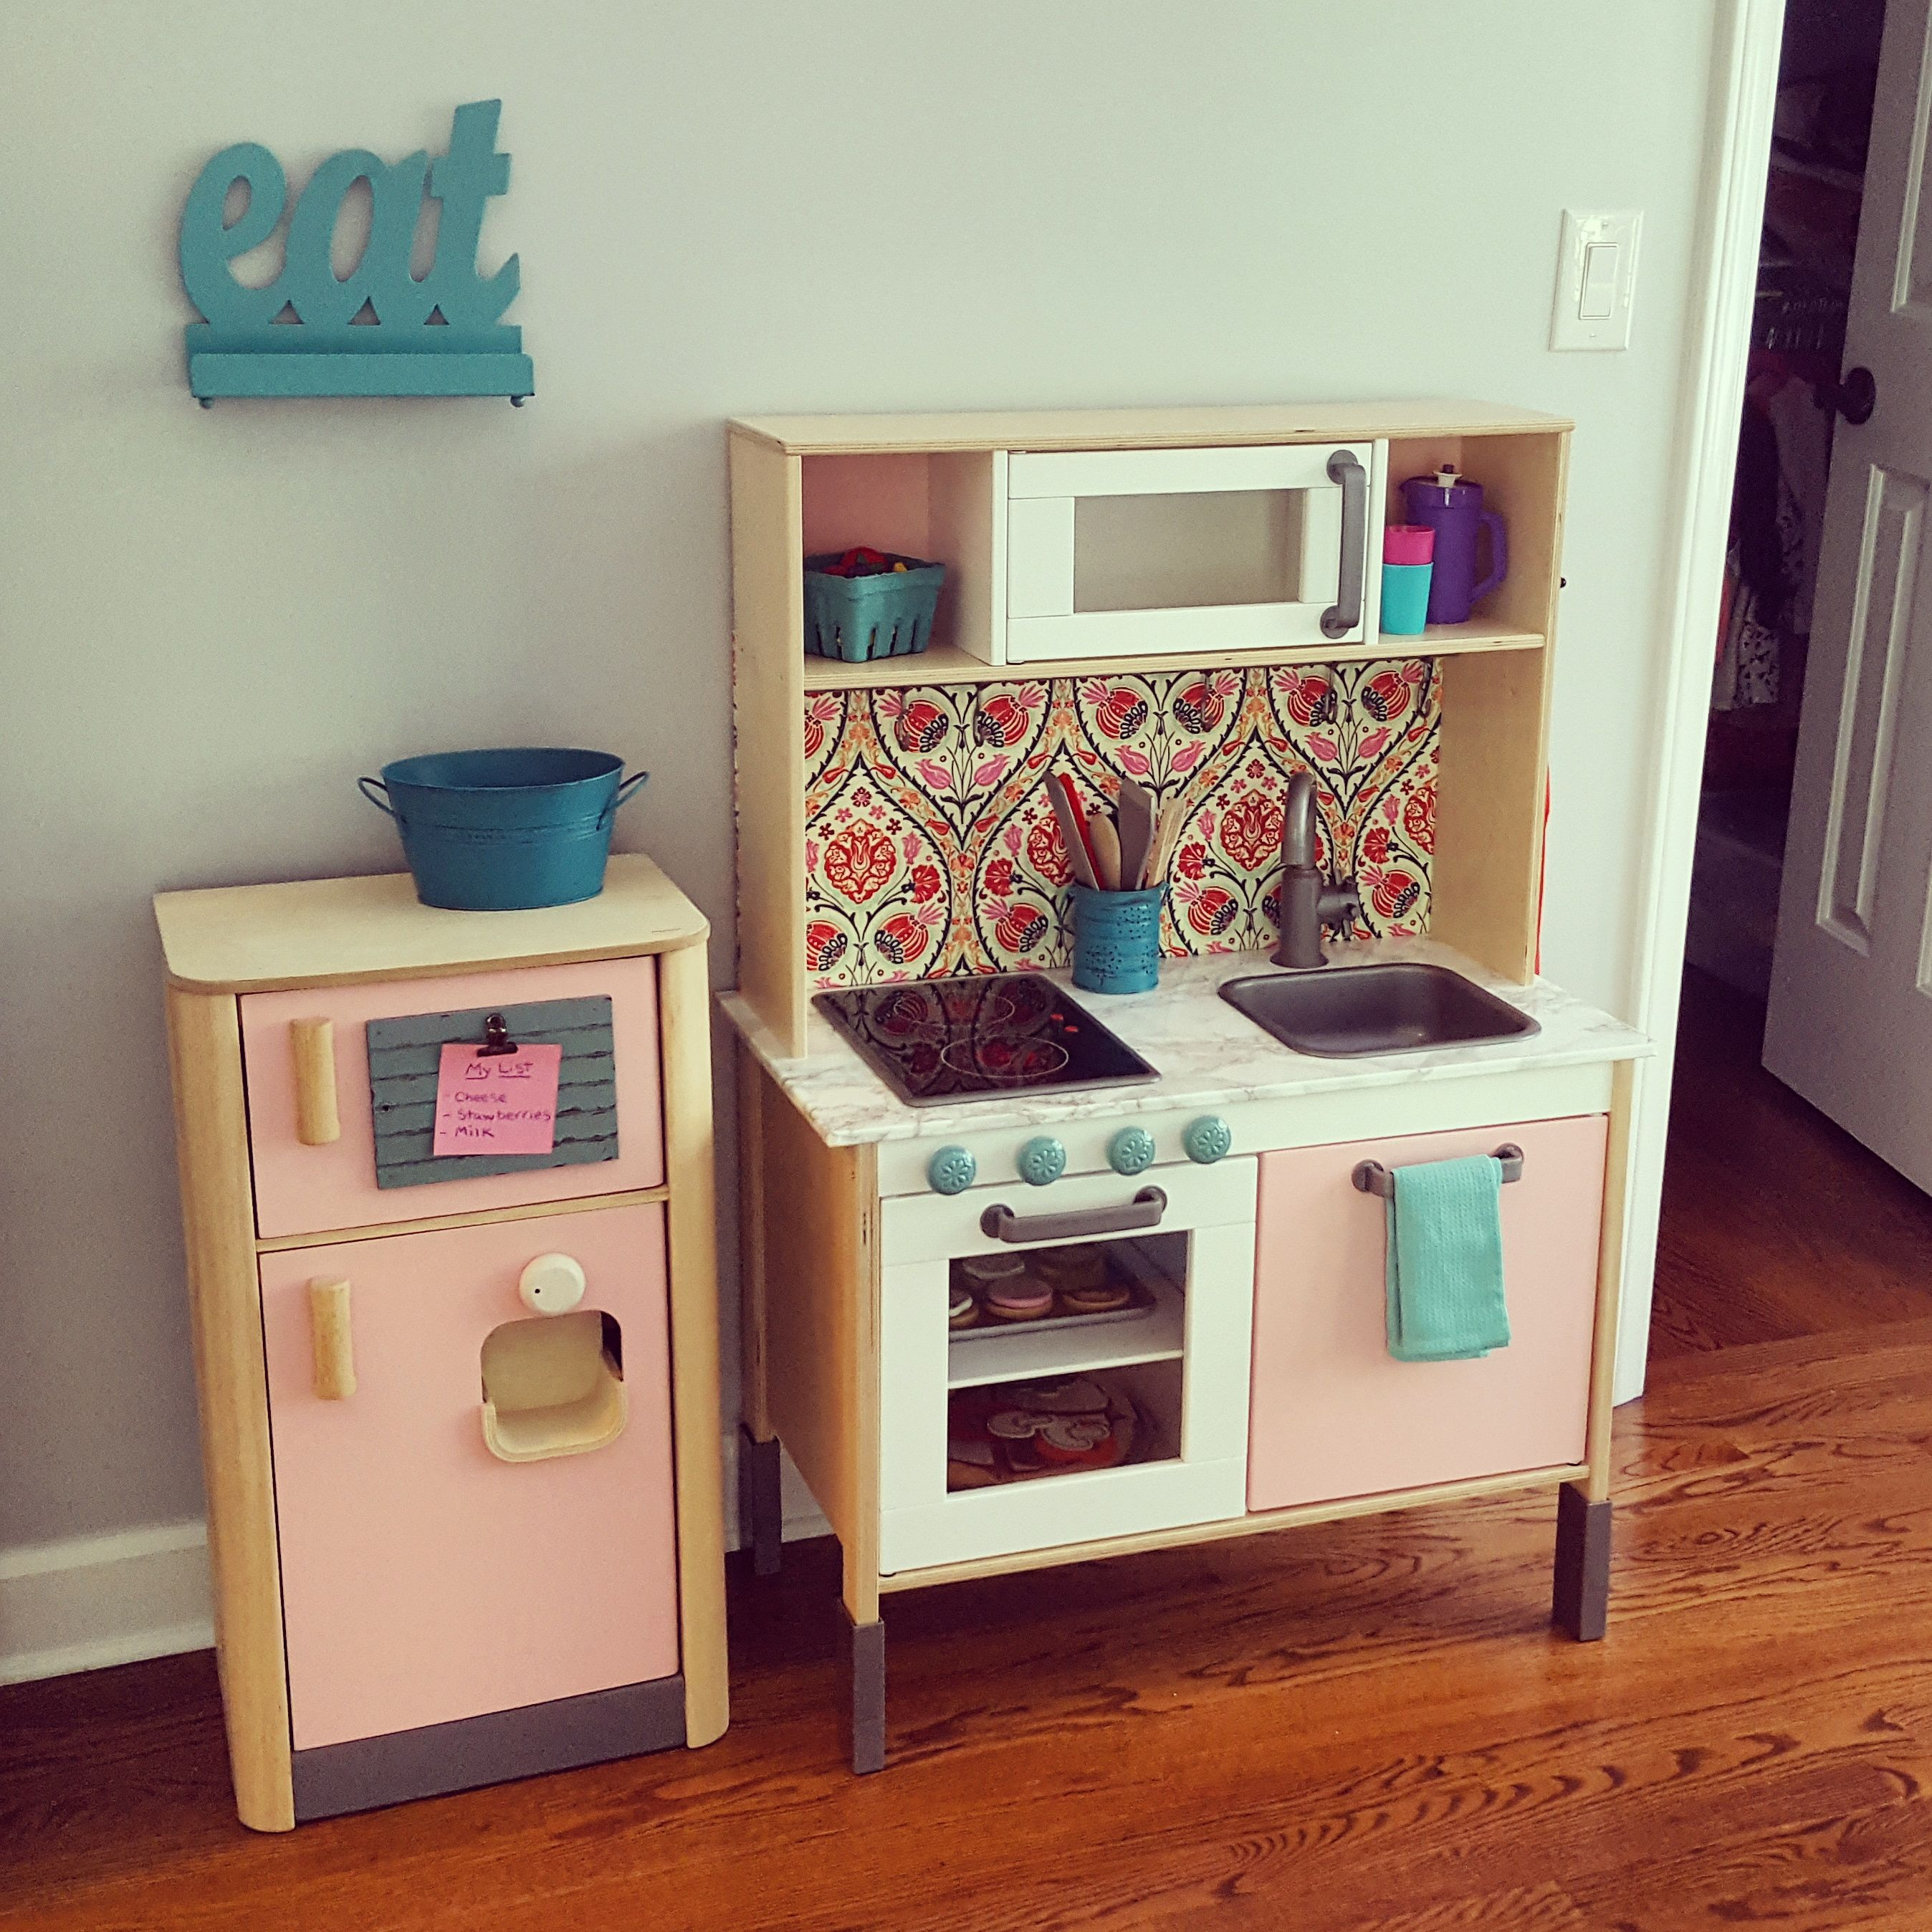 Ikea Hack Kinderküche Ikea Duktig Play Kitchen Hack Viv 39s Bedroom Pinterest